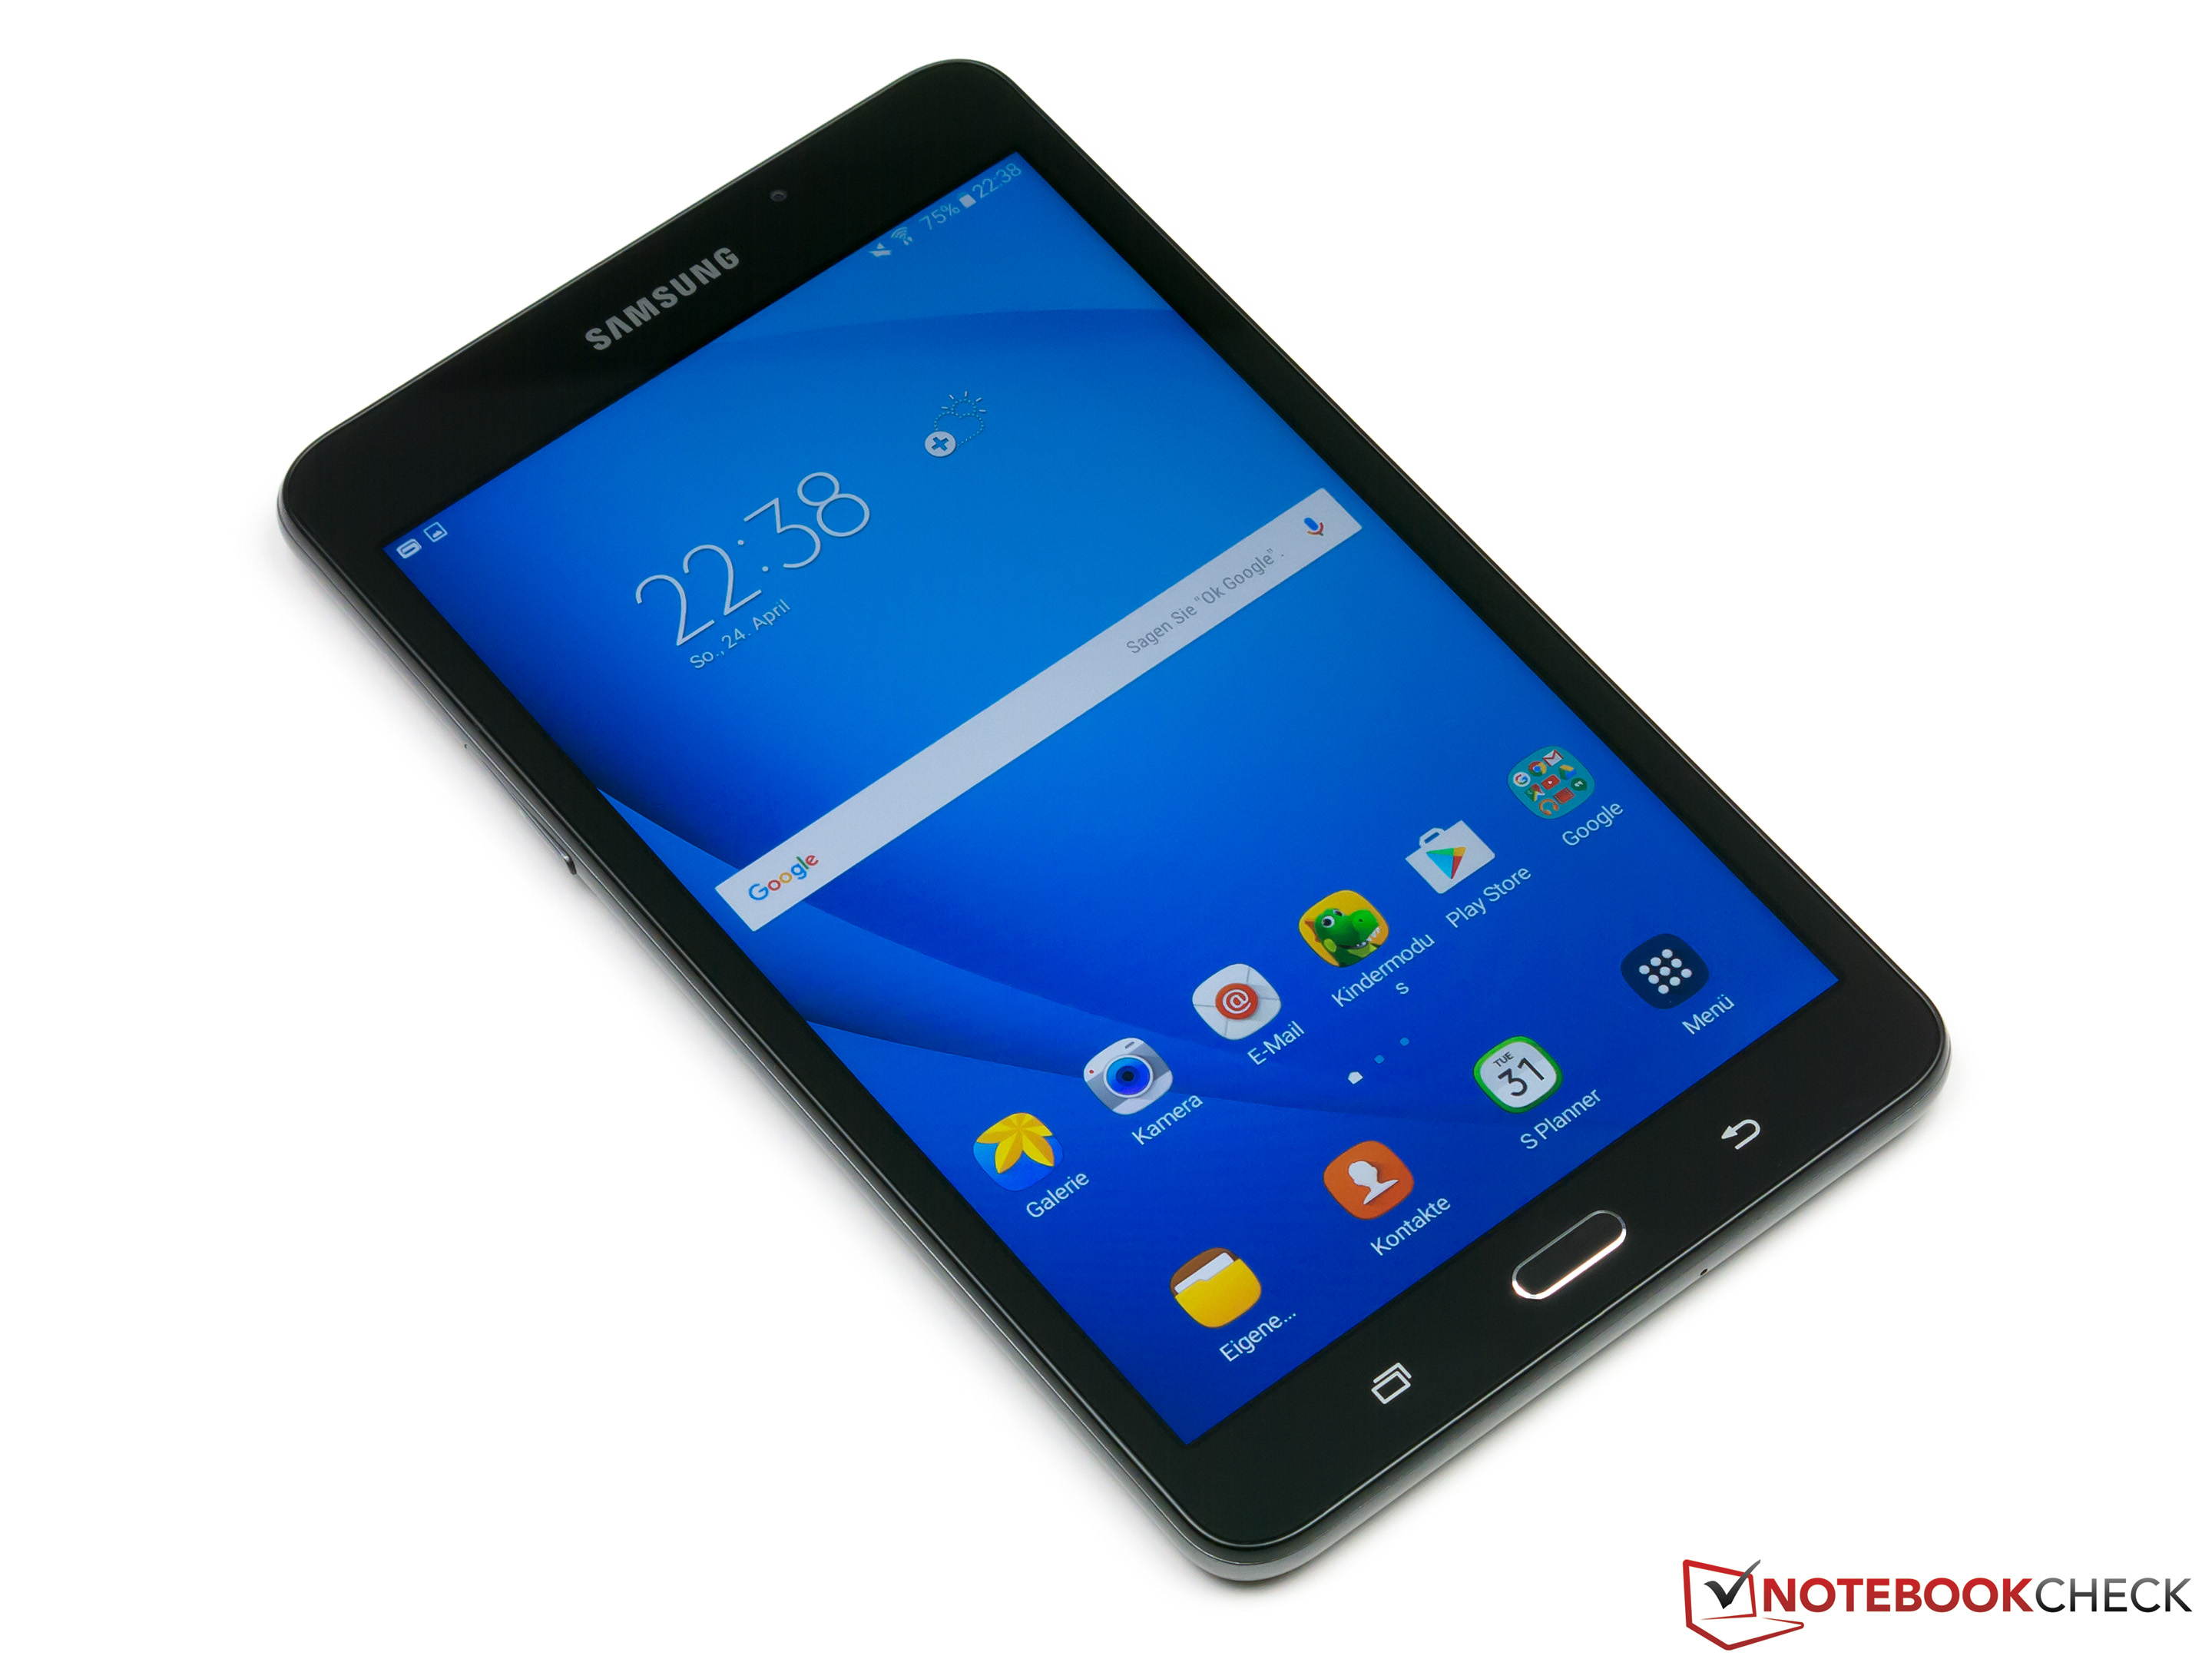 dfb4a6d9f3306 Samsung Galaxy Tab A 7.0 (2016) Tablet Review - NotebookCheck.net ...